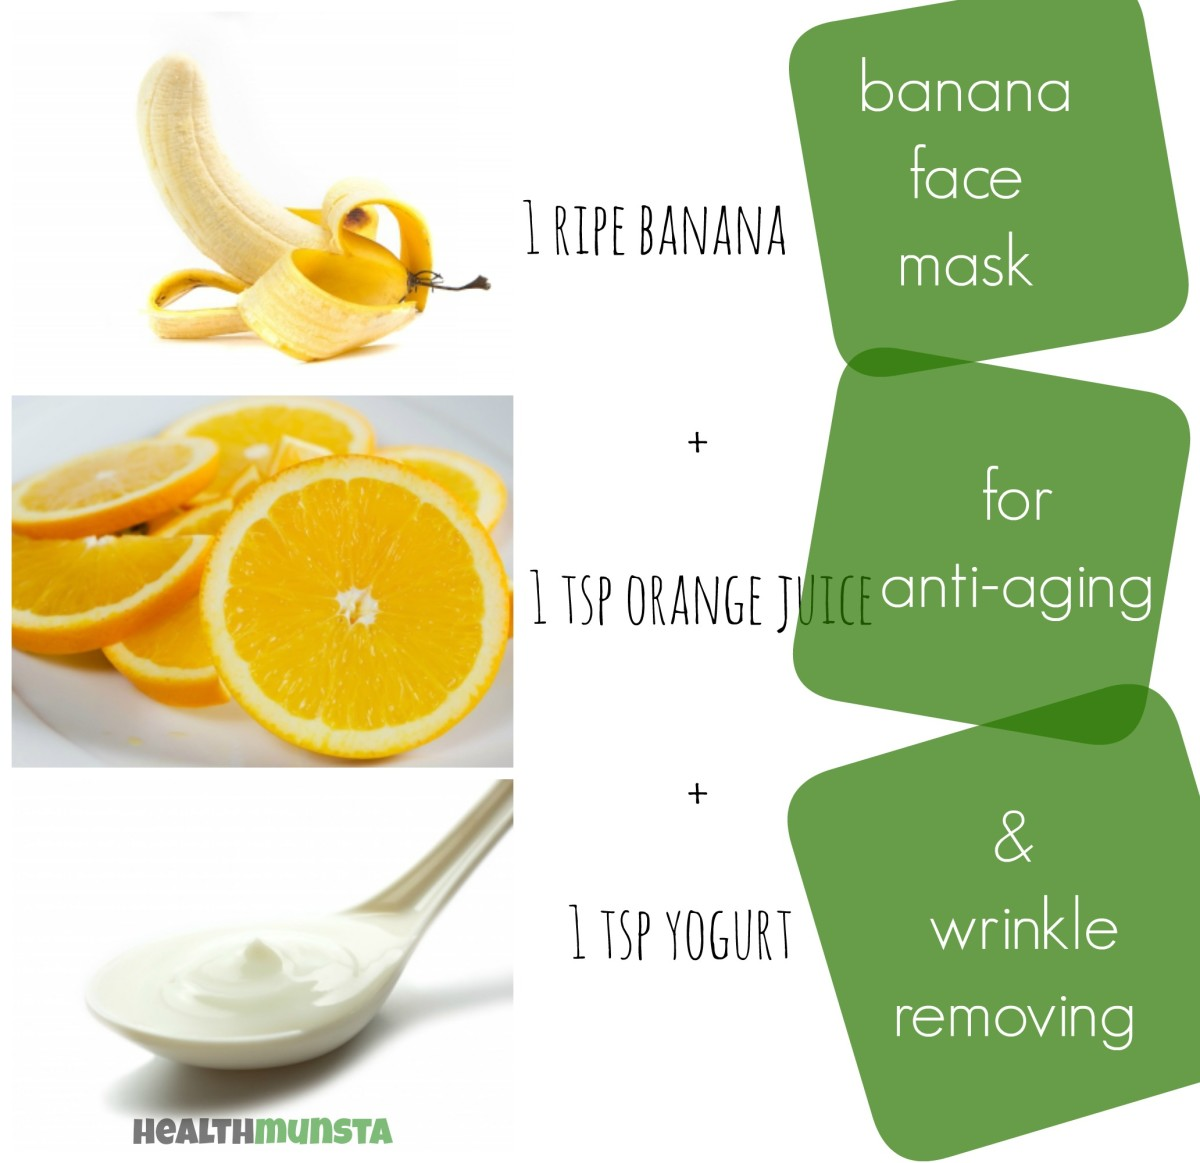 An easy at home DIY banana face mask to remove wrinkles and make skin look young!